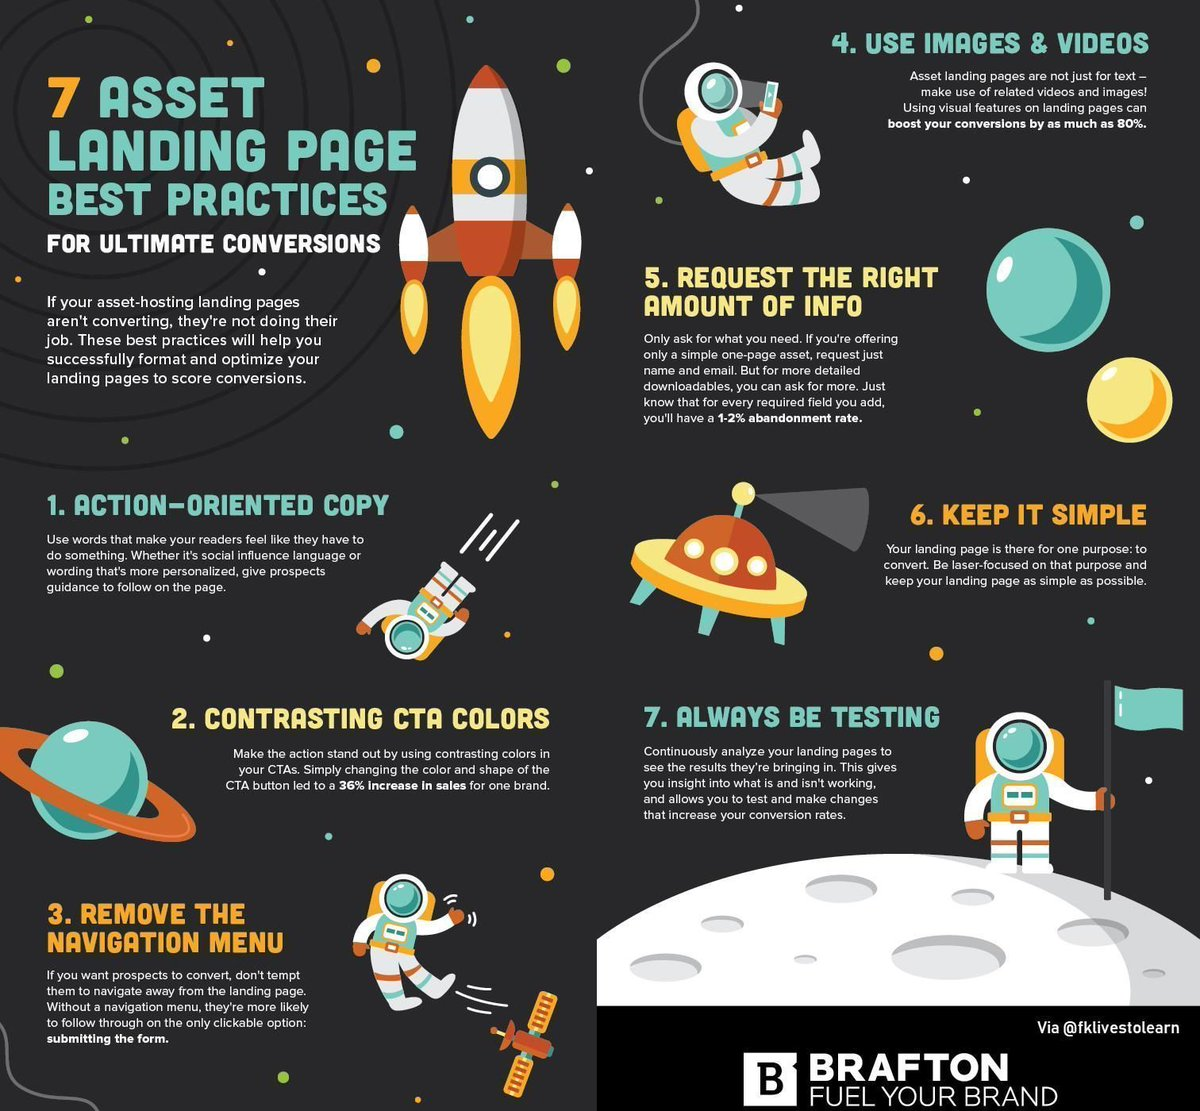 7 Best #LandingPage Practices for a more Effective #DigitalMarketing strategy: - Action-oriented copy - Contrasting CTA colors - Keep it simple - Always be testing - ...  #LandingPages #DigitalMarketingTips #OnlineMarketingTips  By @Brafton Via @fklivestolearnpic.twitter.com/v8lNW4h4dw